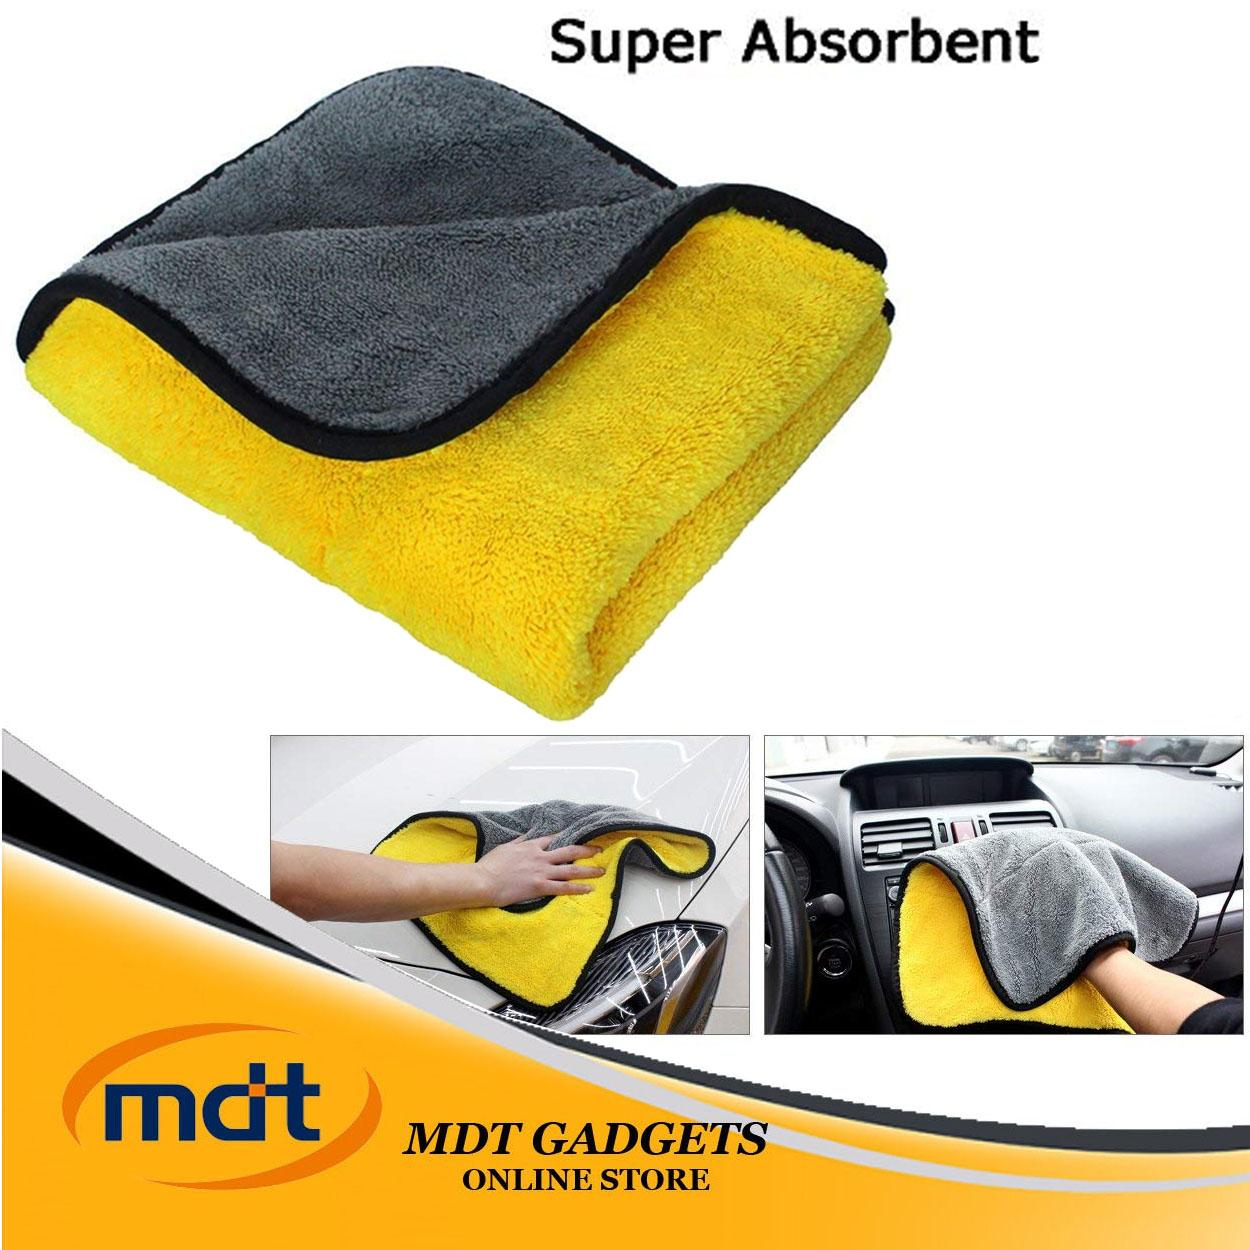 Super Absorbent Car Wash Towel Cleaning Drying Towel (yellow-Gray) By Mdt Gadgets.